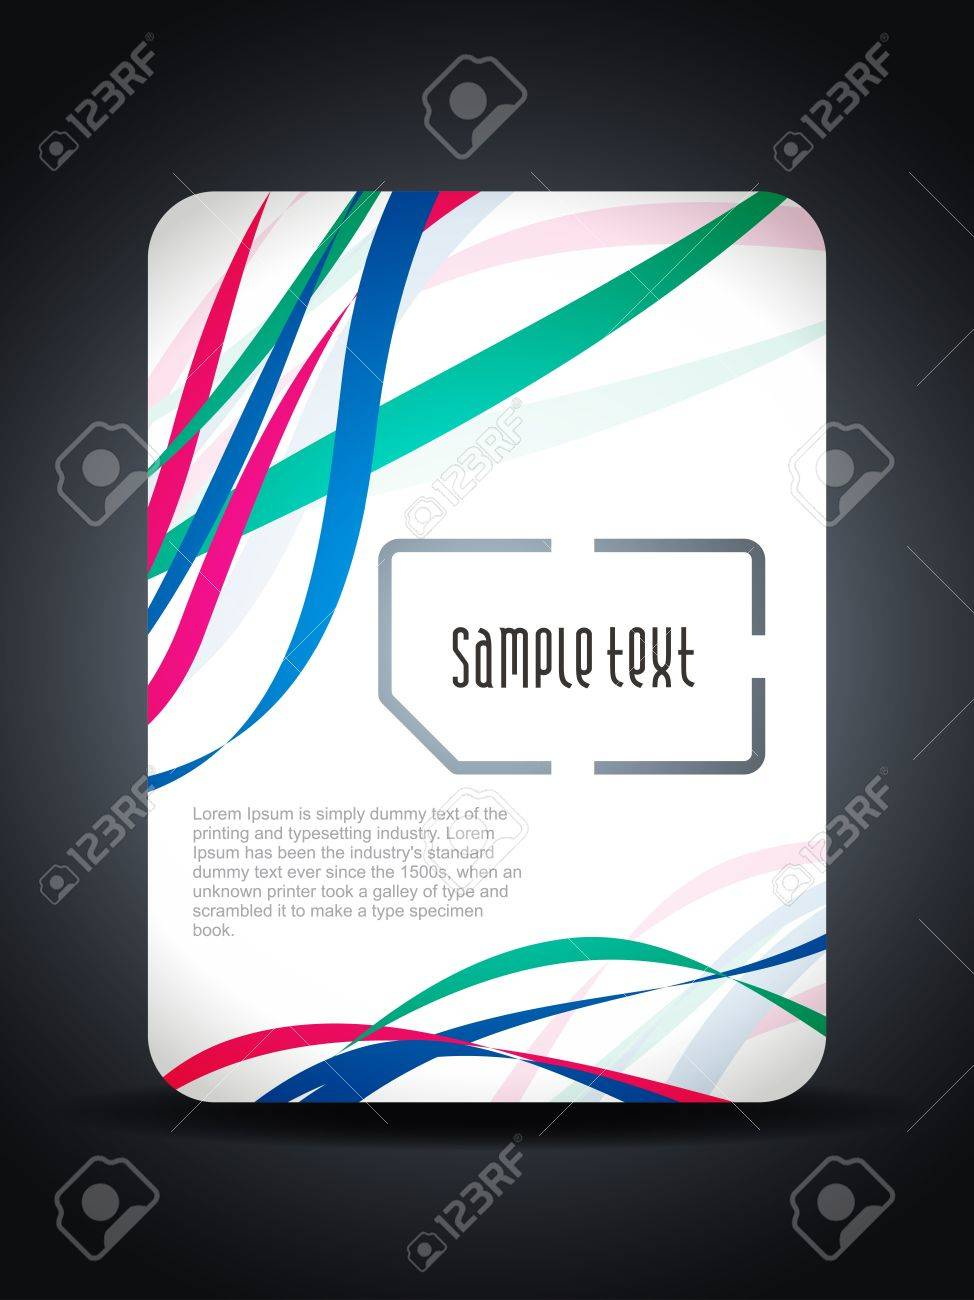 Creative sim card presentation design concept with colorful waves. Stock Vector - 16242991